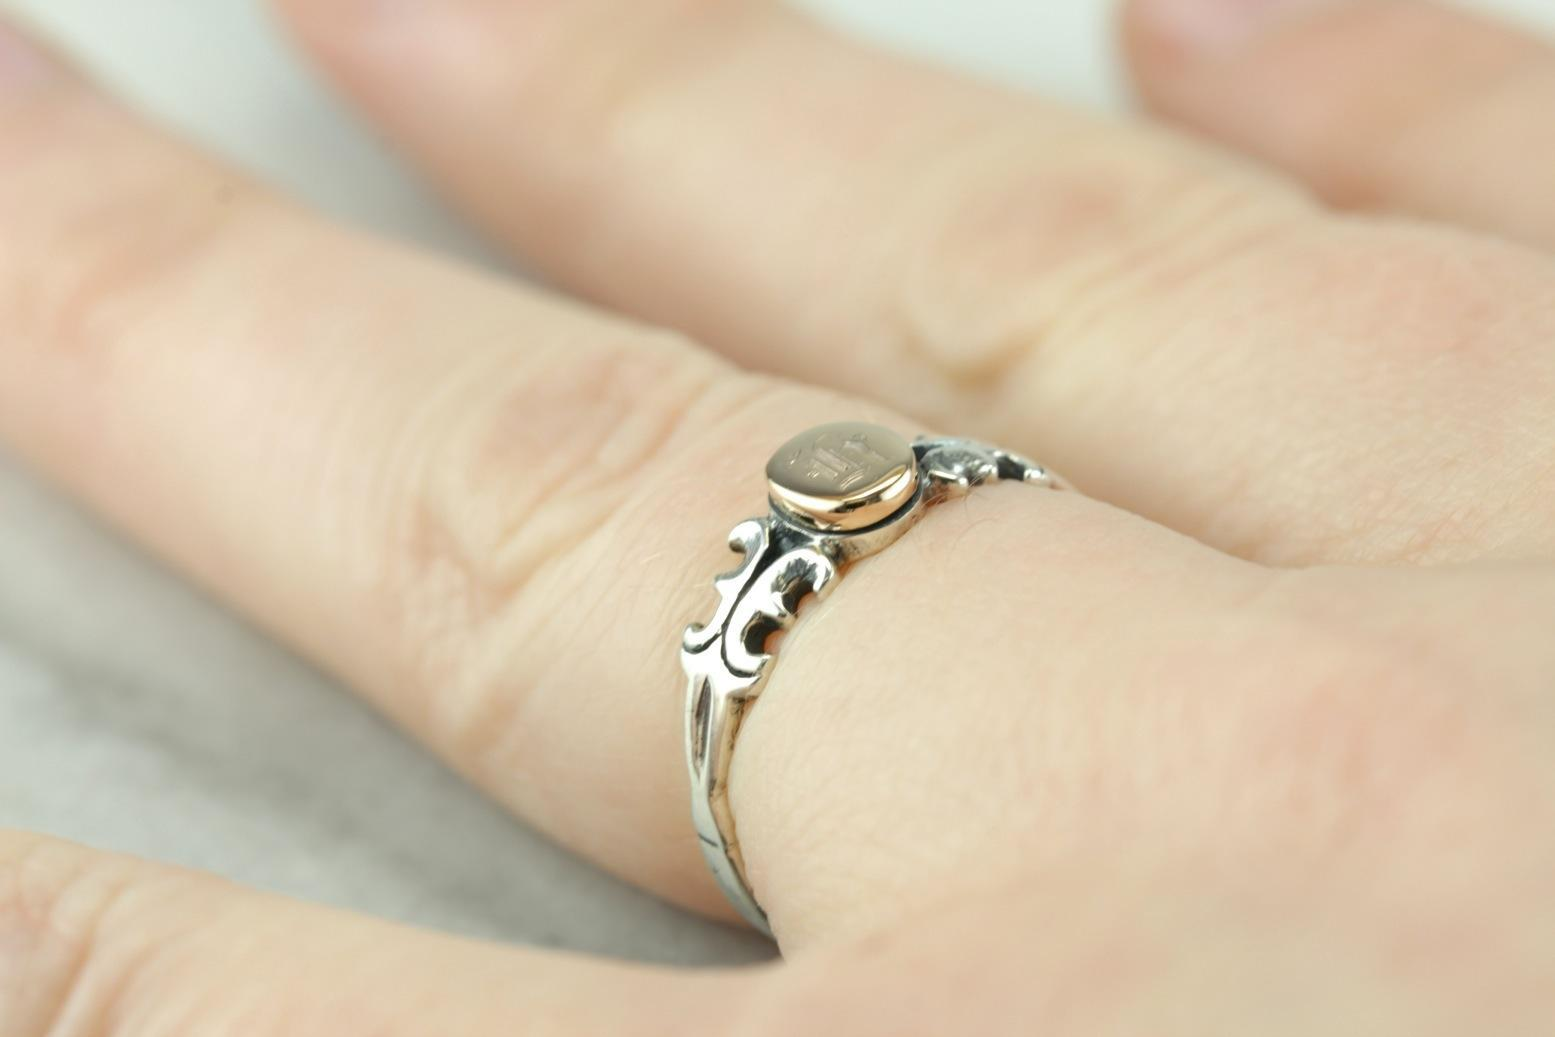 Upcycled H Signet Ring in Silver and Gold